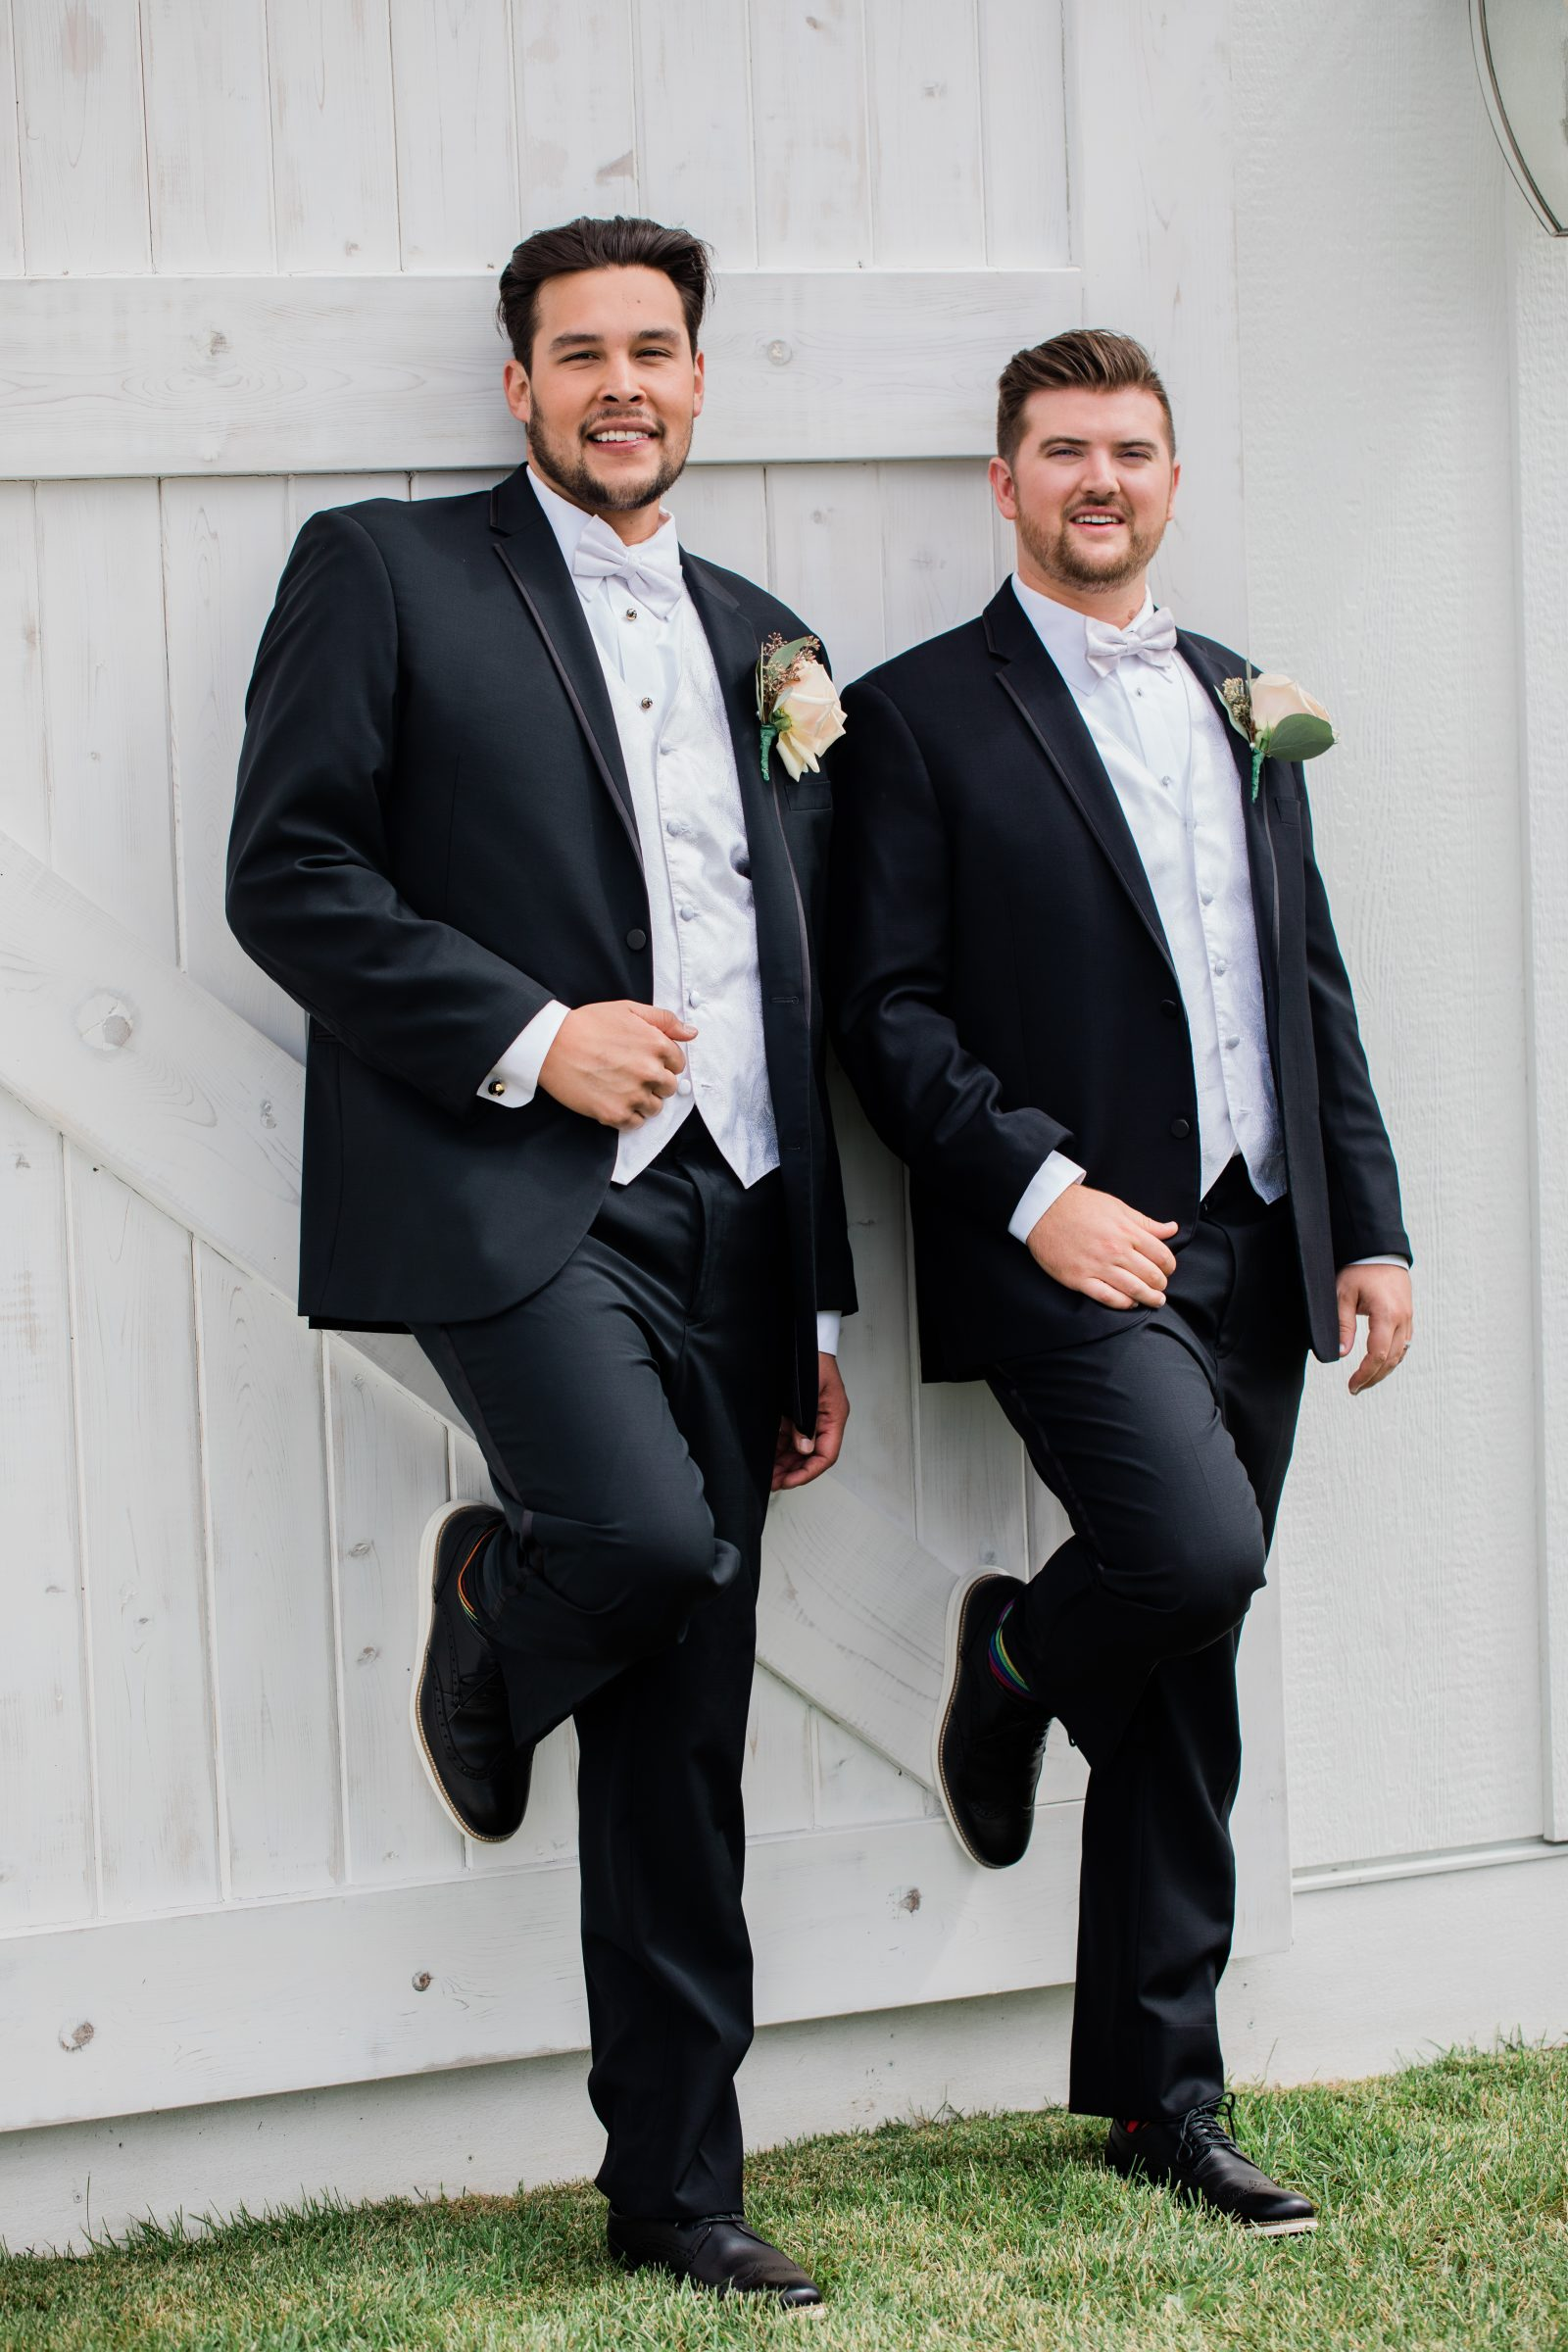 Grooms stand in front of barn at Minnesota wedding